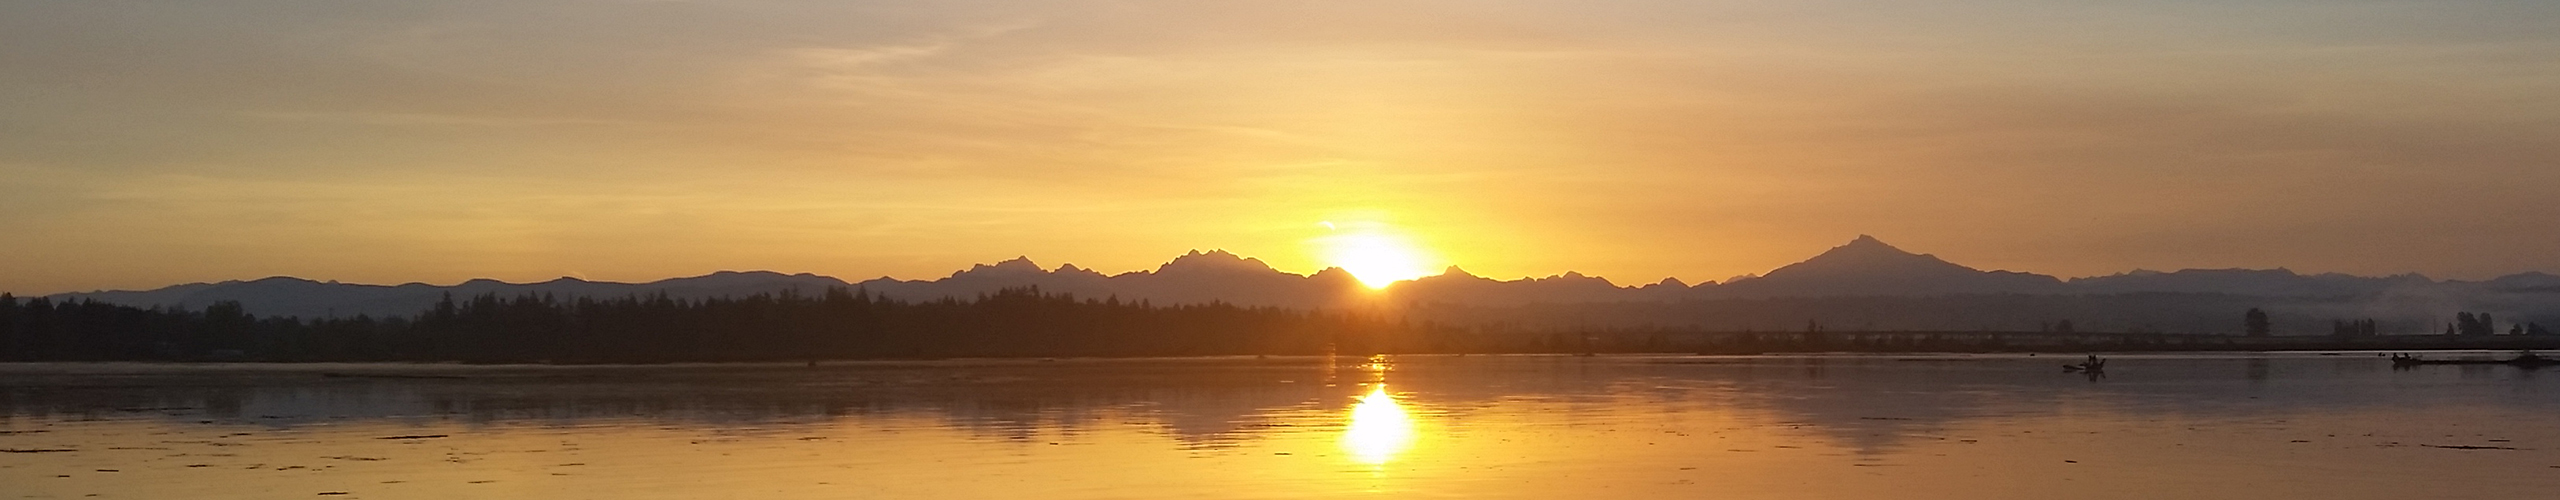 Tulalip Natural Resources Department image of sunrise on the Salish Sea